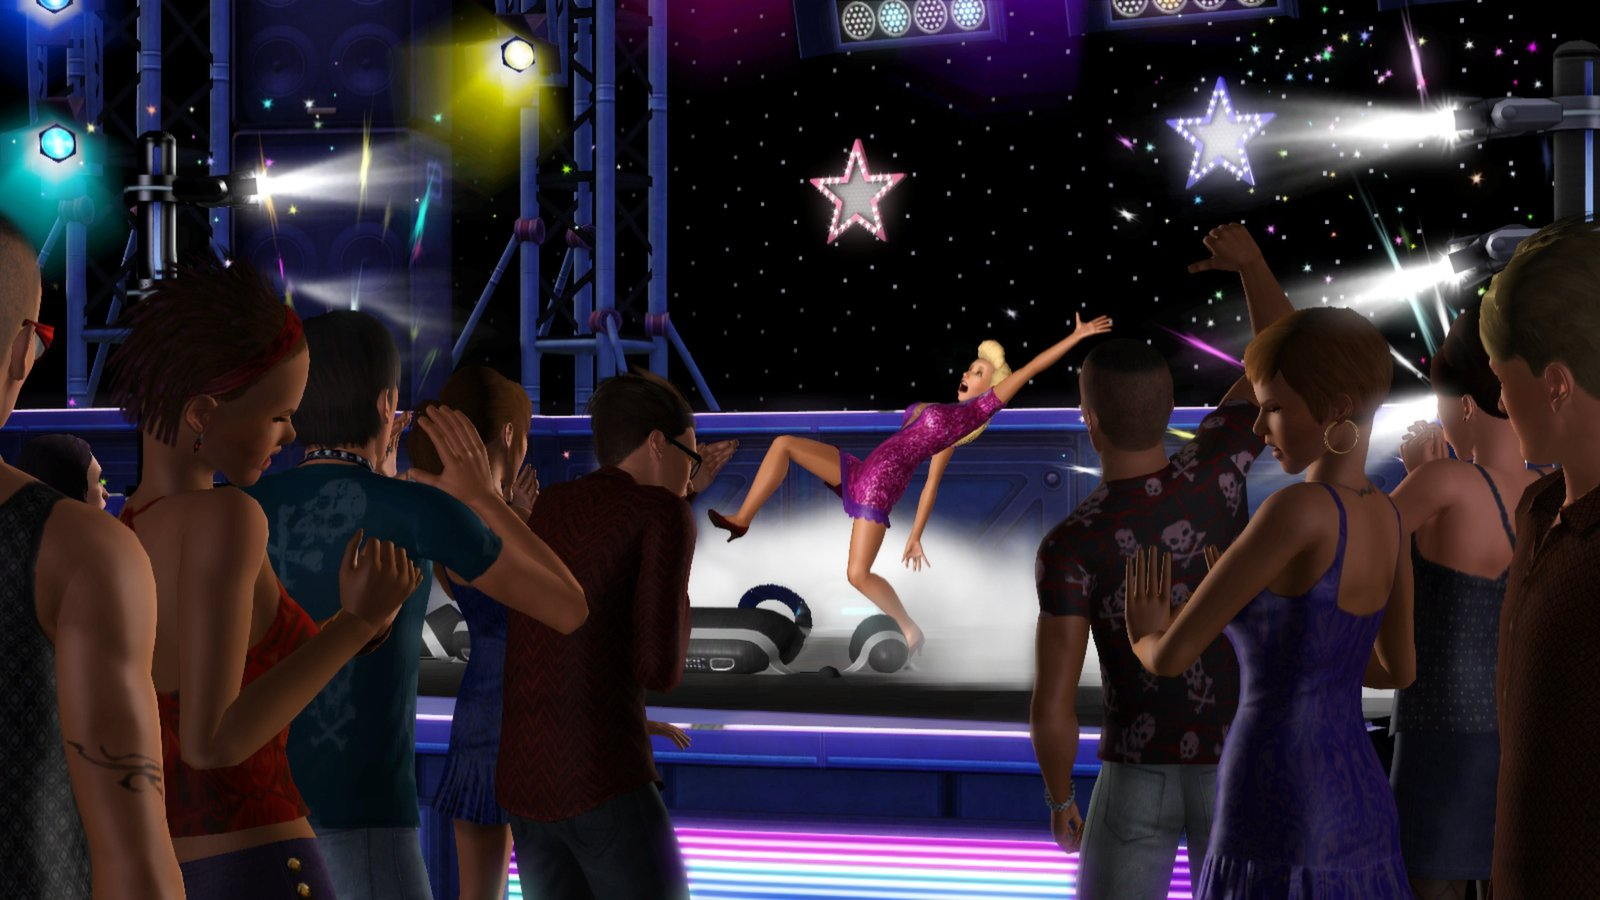 The Sims 3 Showtime 5